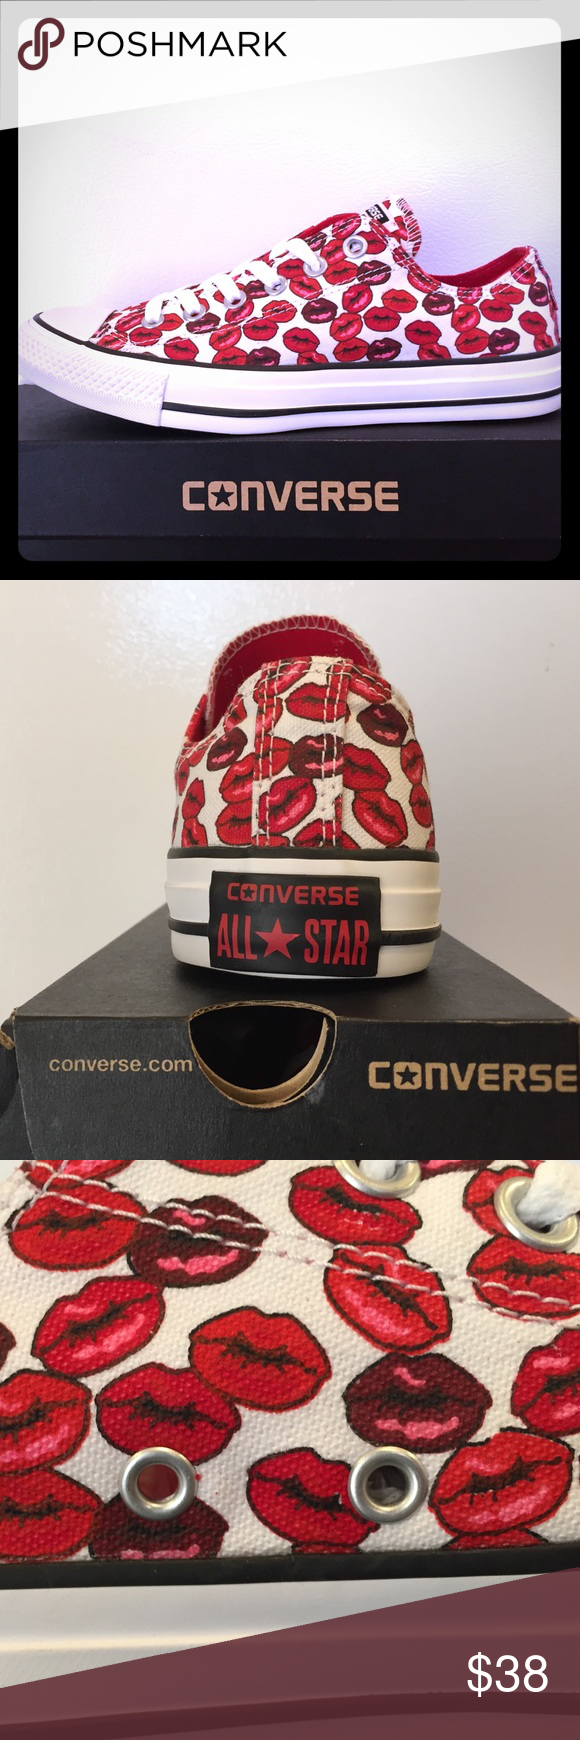 7bddf8dbae4a BRAND NEW Converse Chuck Taylor KISS PRINT!!! Get your hands on these SUPER